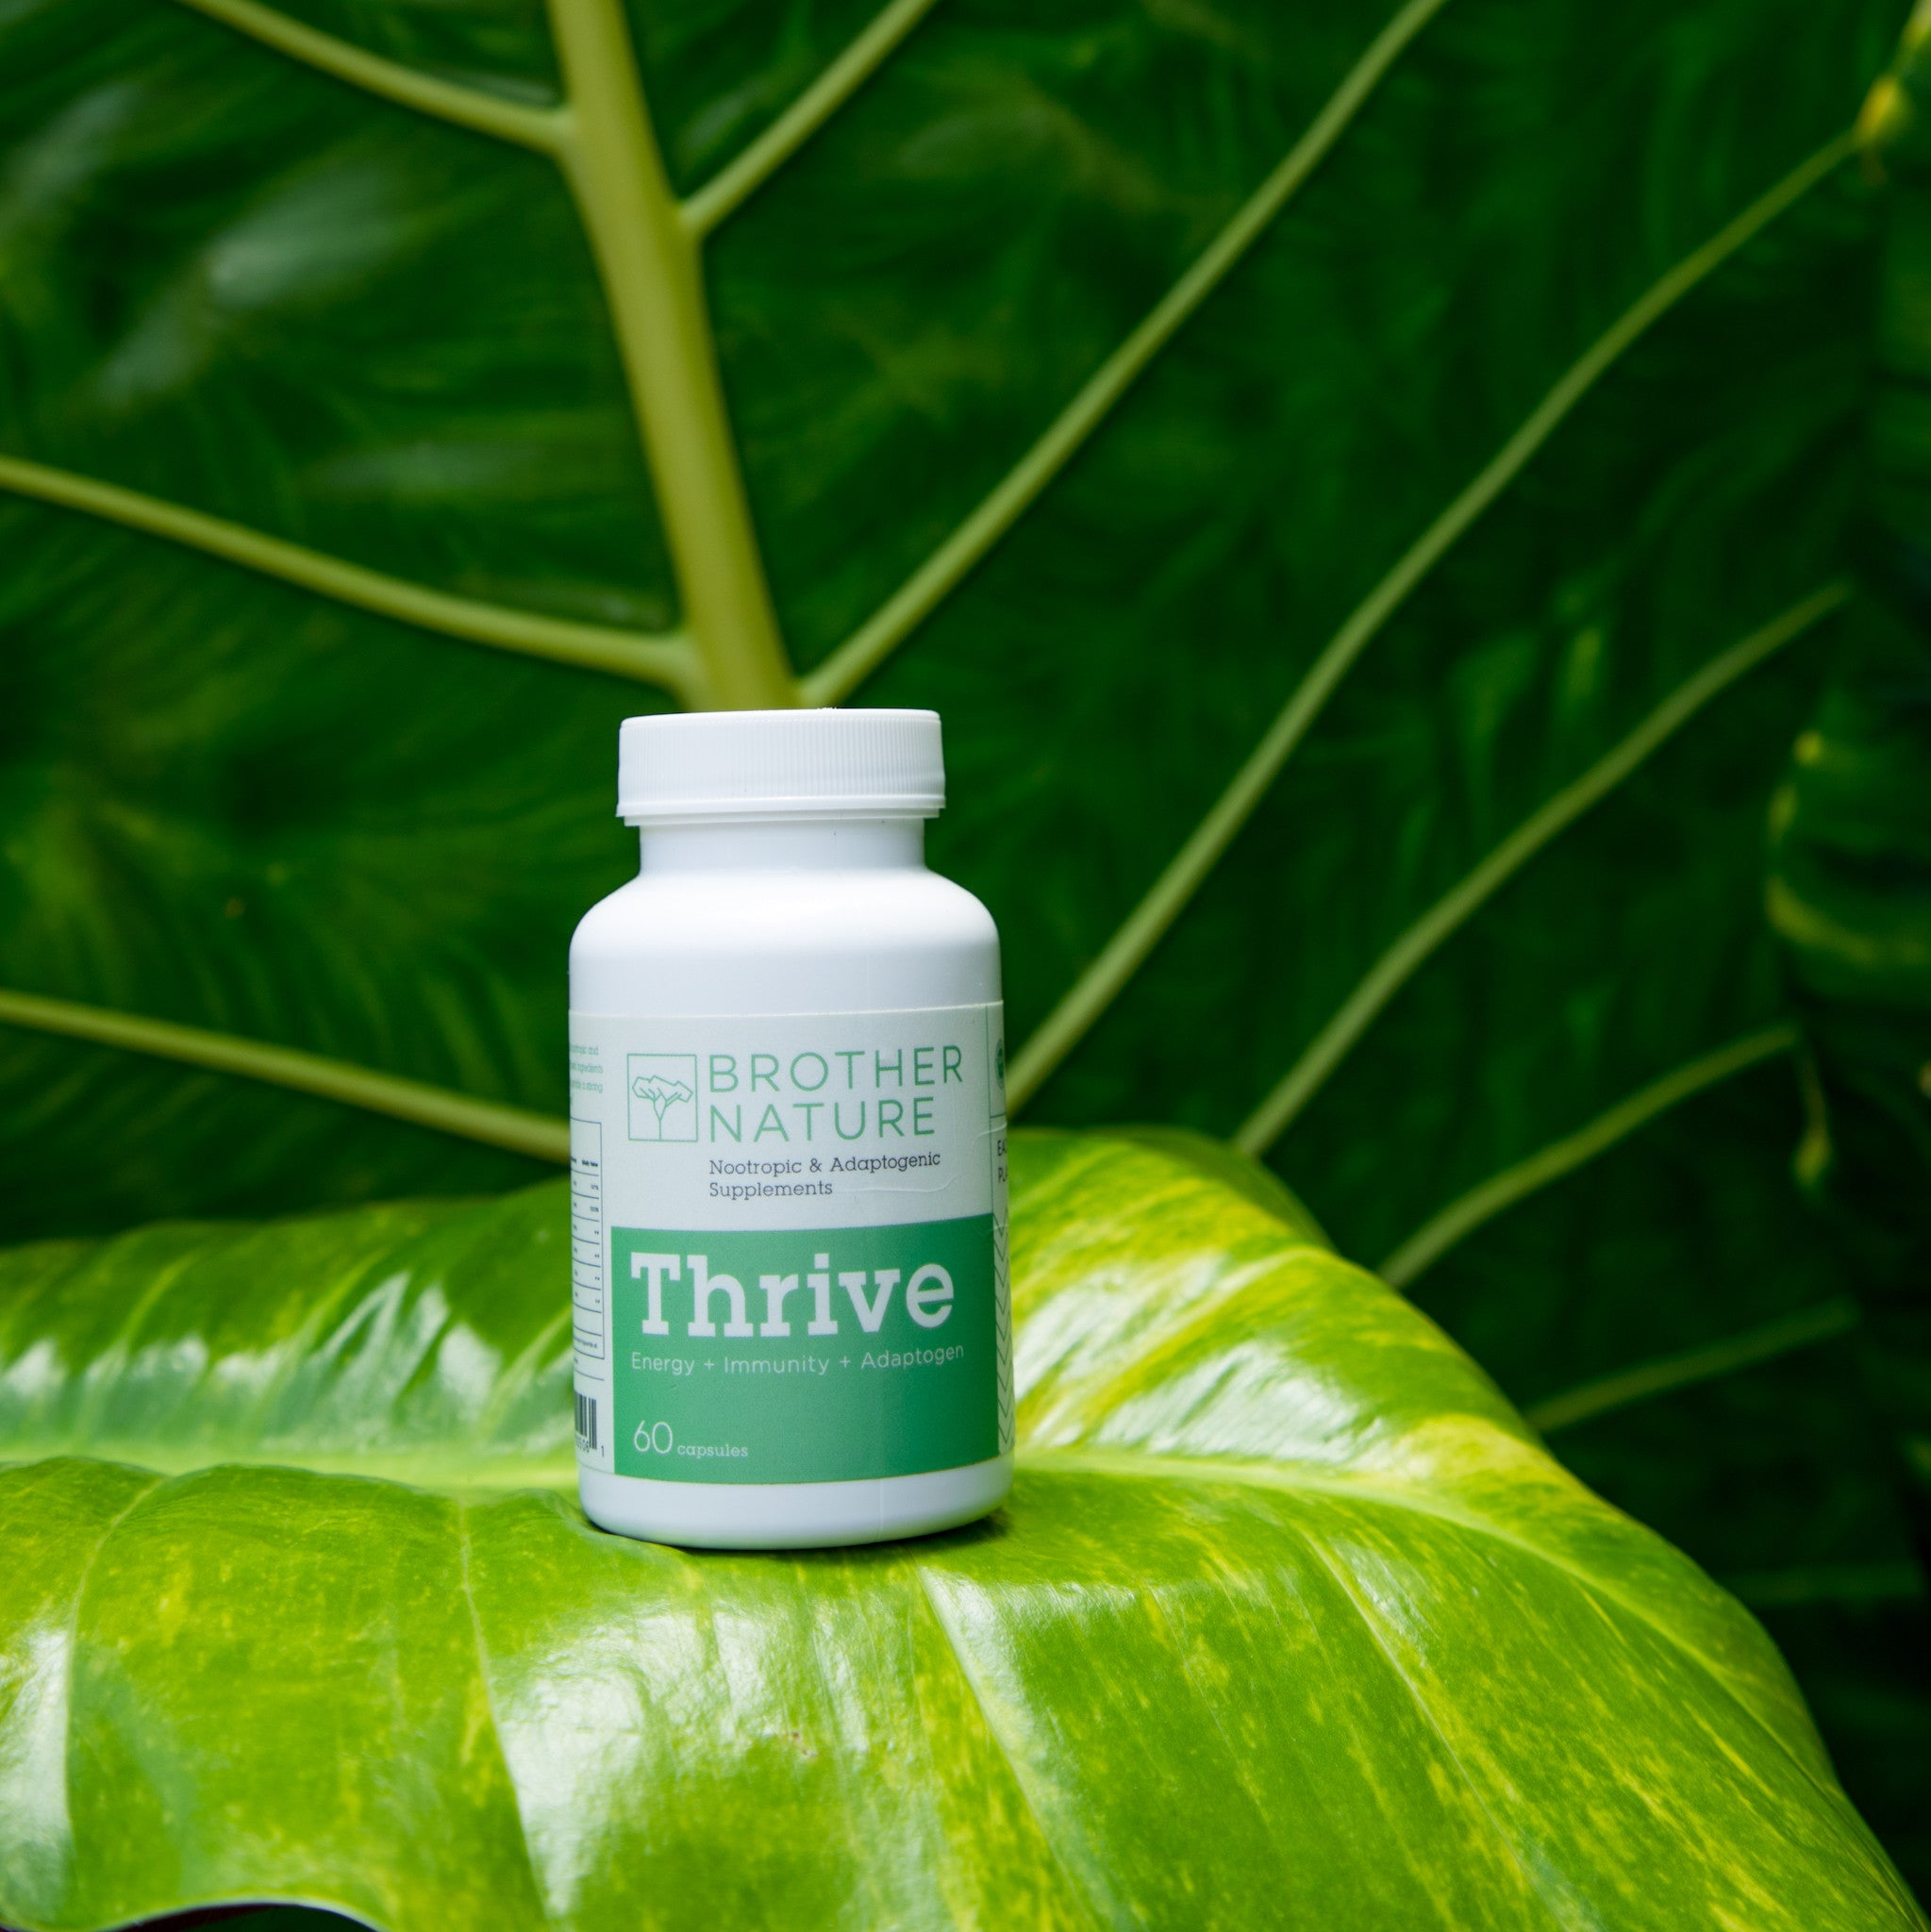 Brother Nature Thrive - Energy, Immunity, Adaptogen